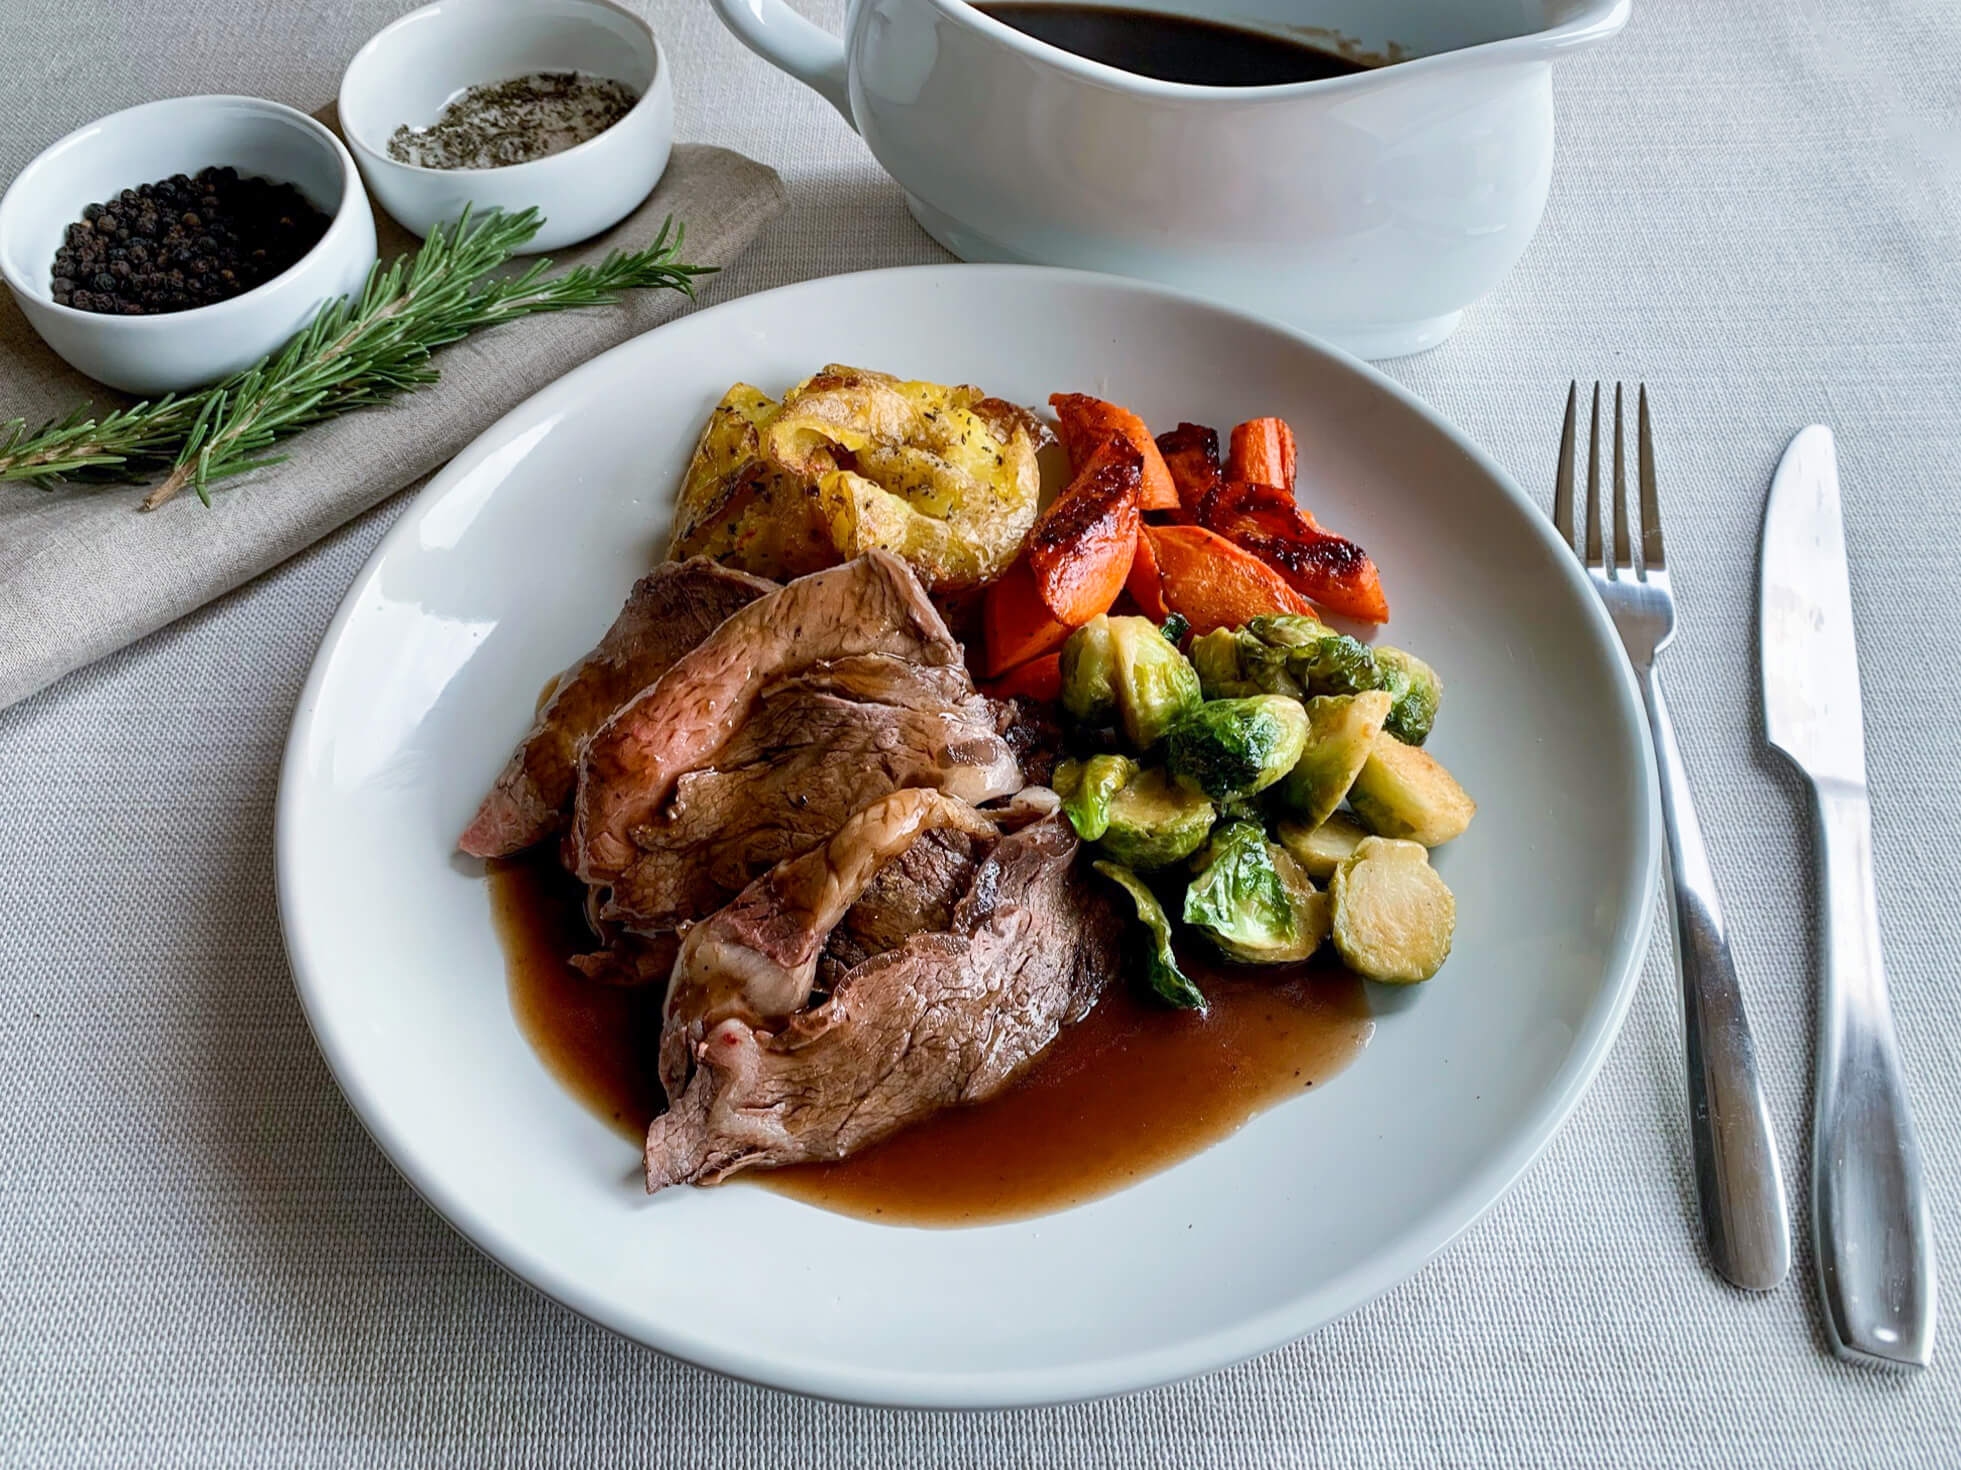 The Sunday Roast:  A Beef-eater Tradition